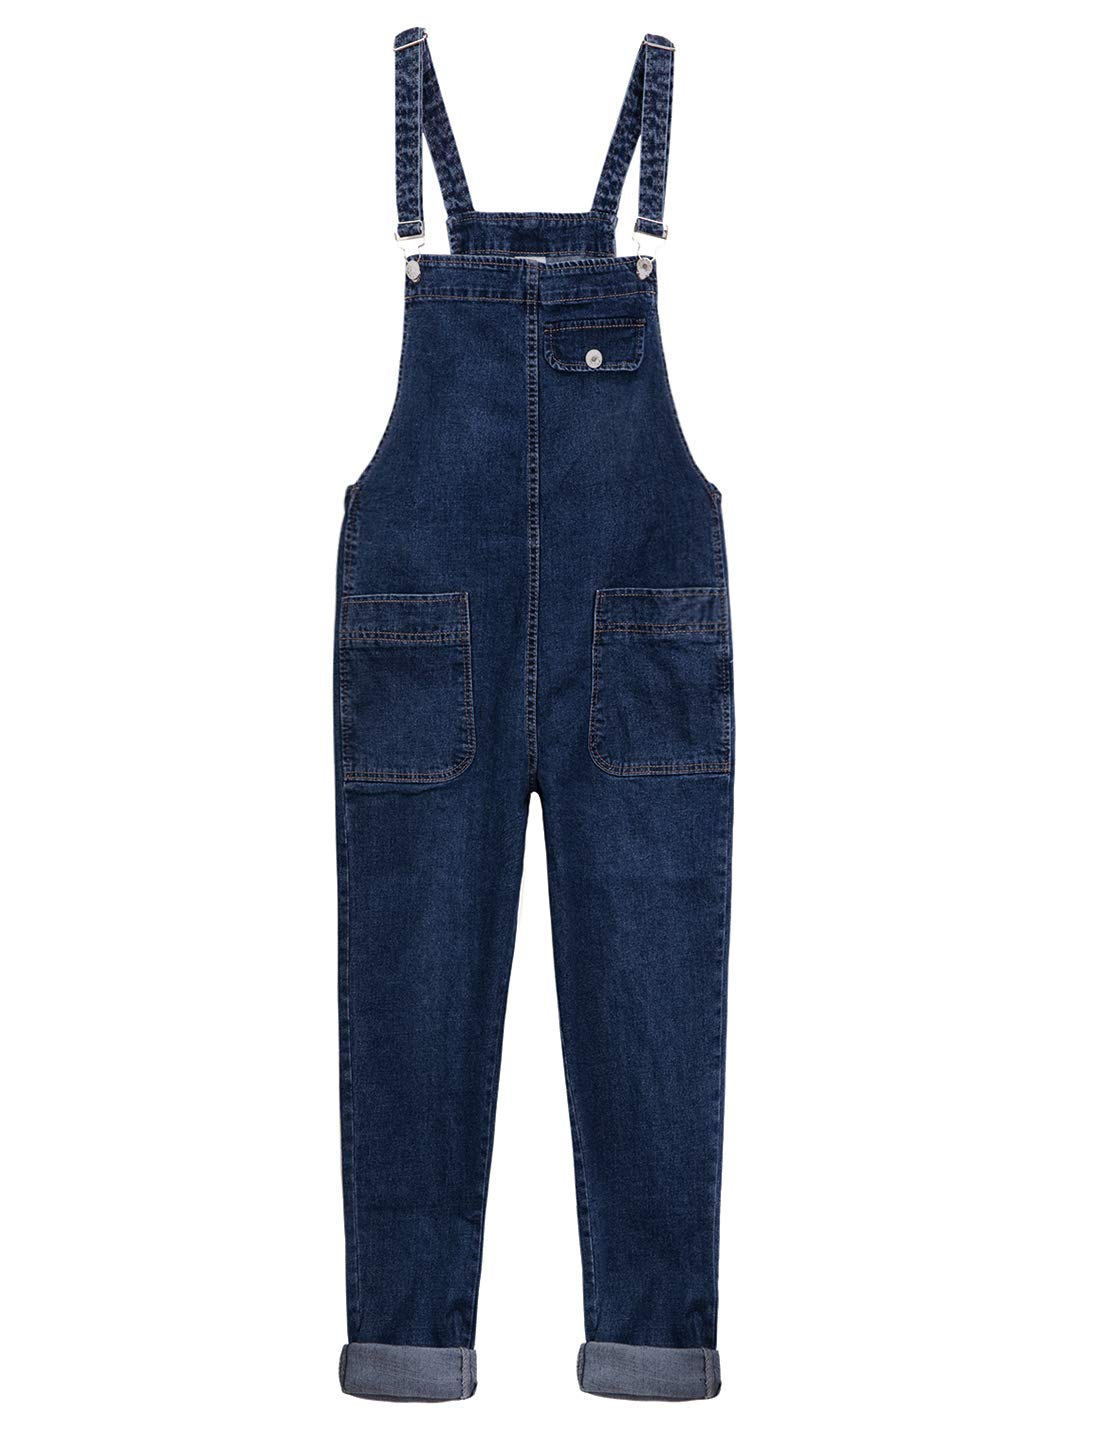 f0ed6b652bc Yeokou Women s Casual Denim Bib Cropped Overalls Pant Jeans Jumpsuits  product image